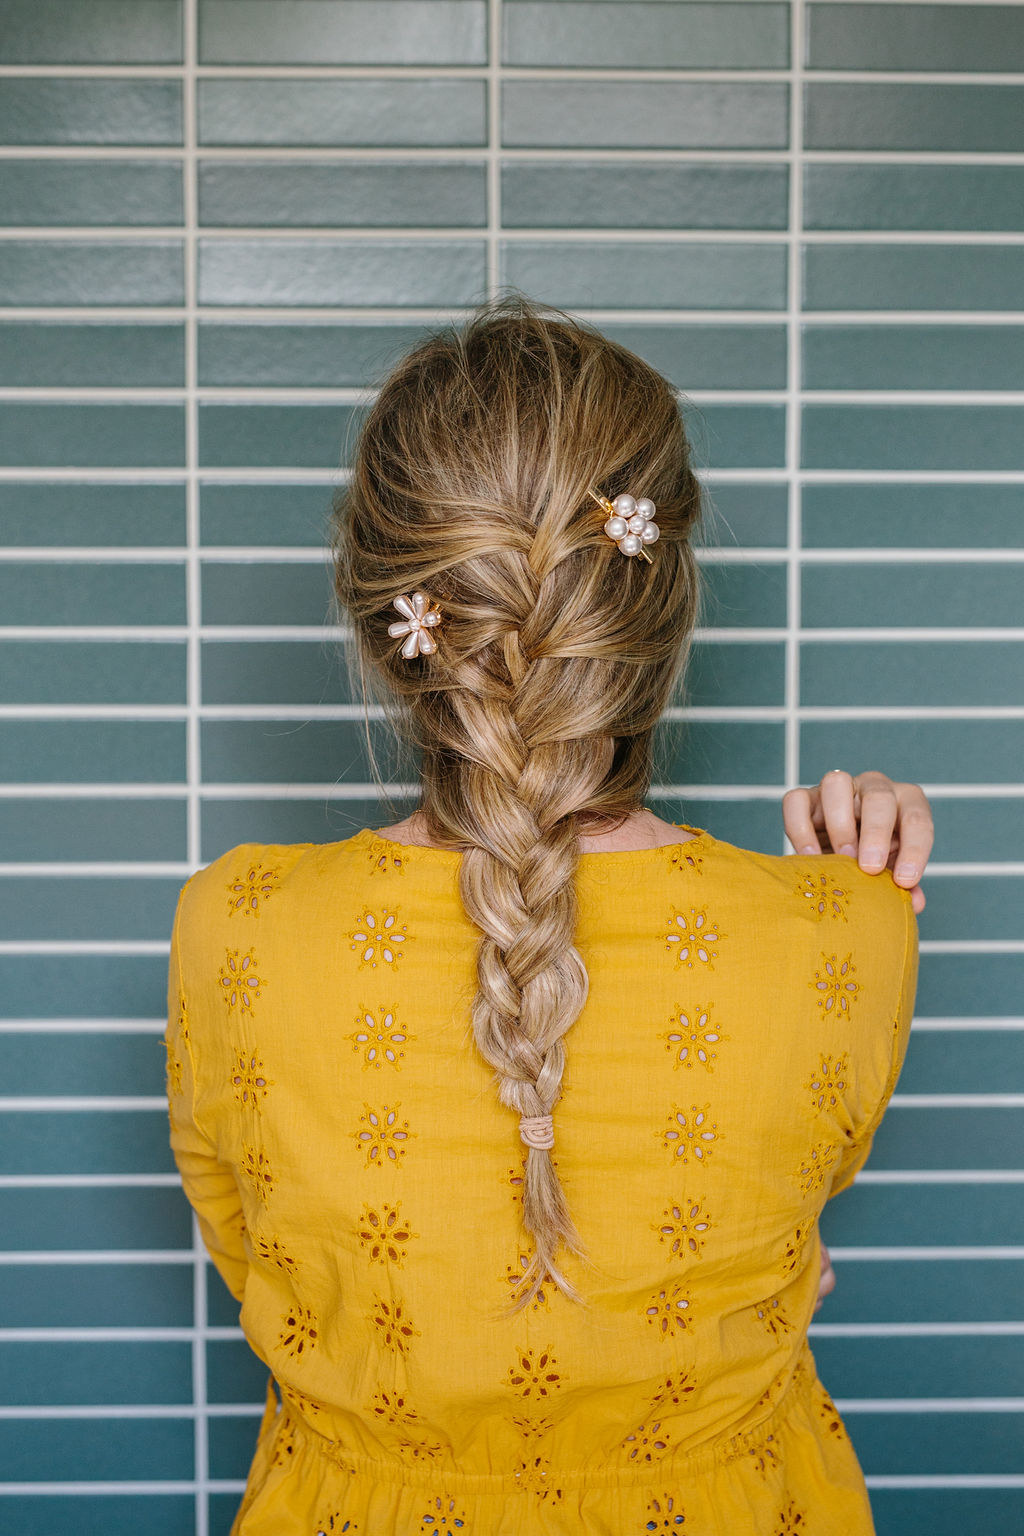 Full length shot of a women in a yellow top with a french braid